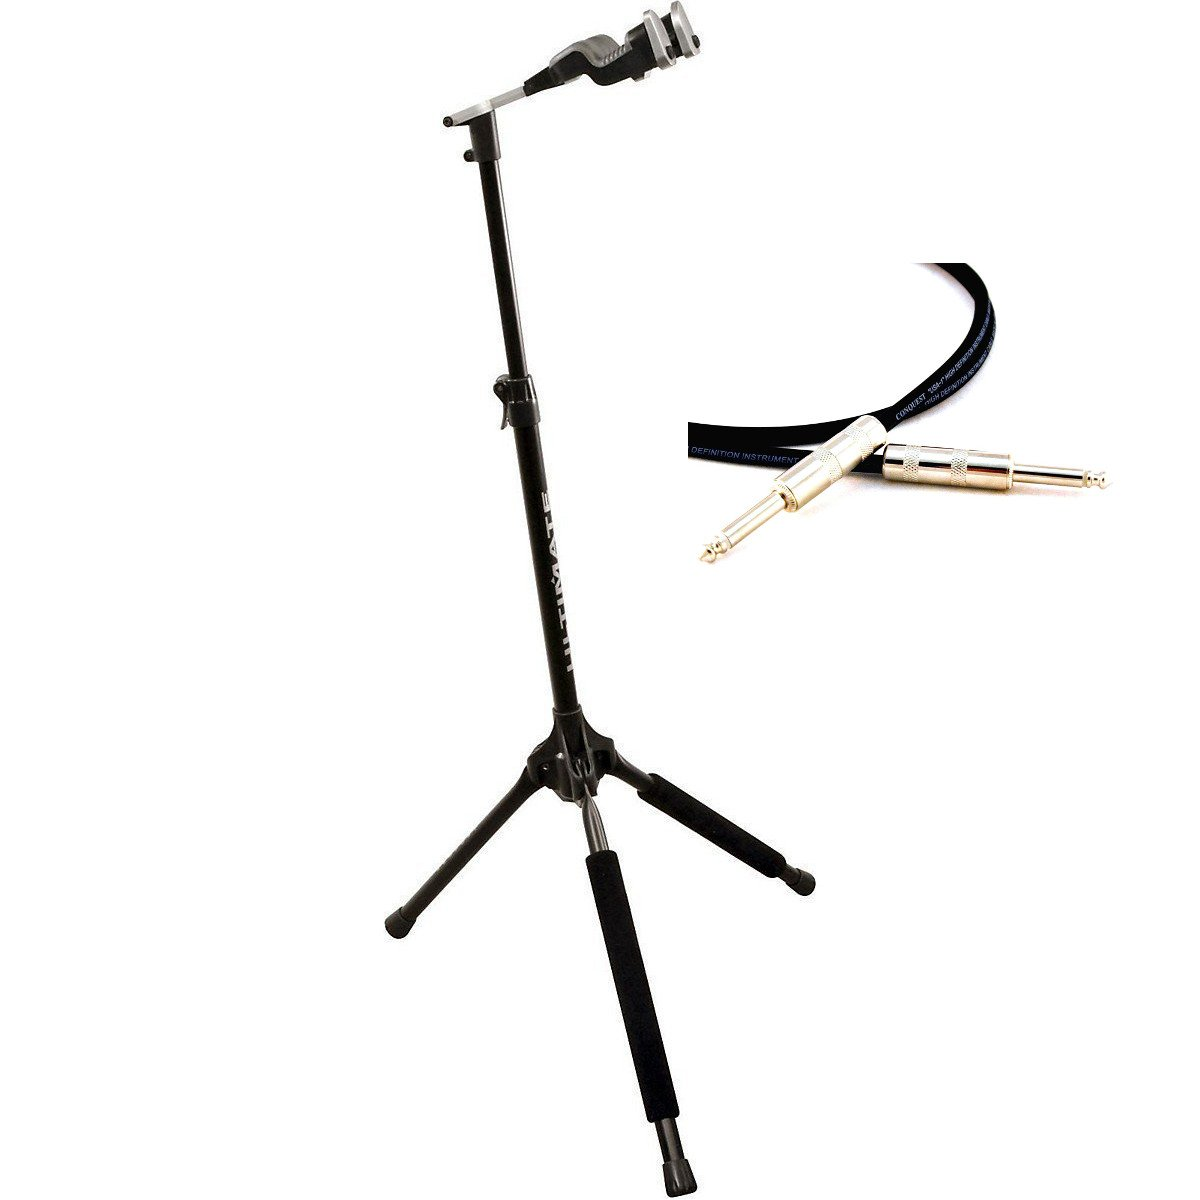 Ultimate Support GS-1000 PRO with 10 ft Conquest Instrument Lifetime Cable